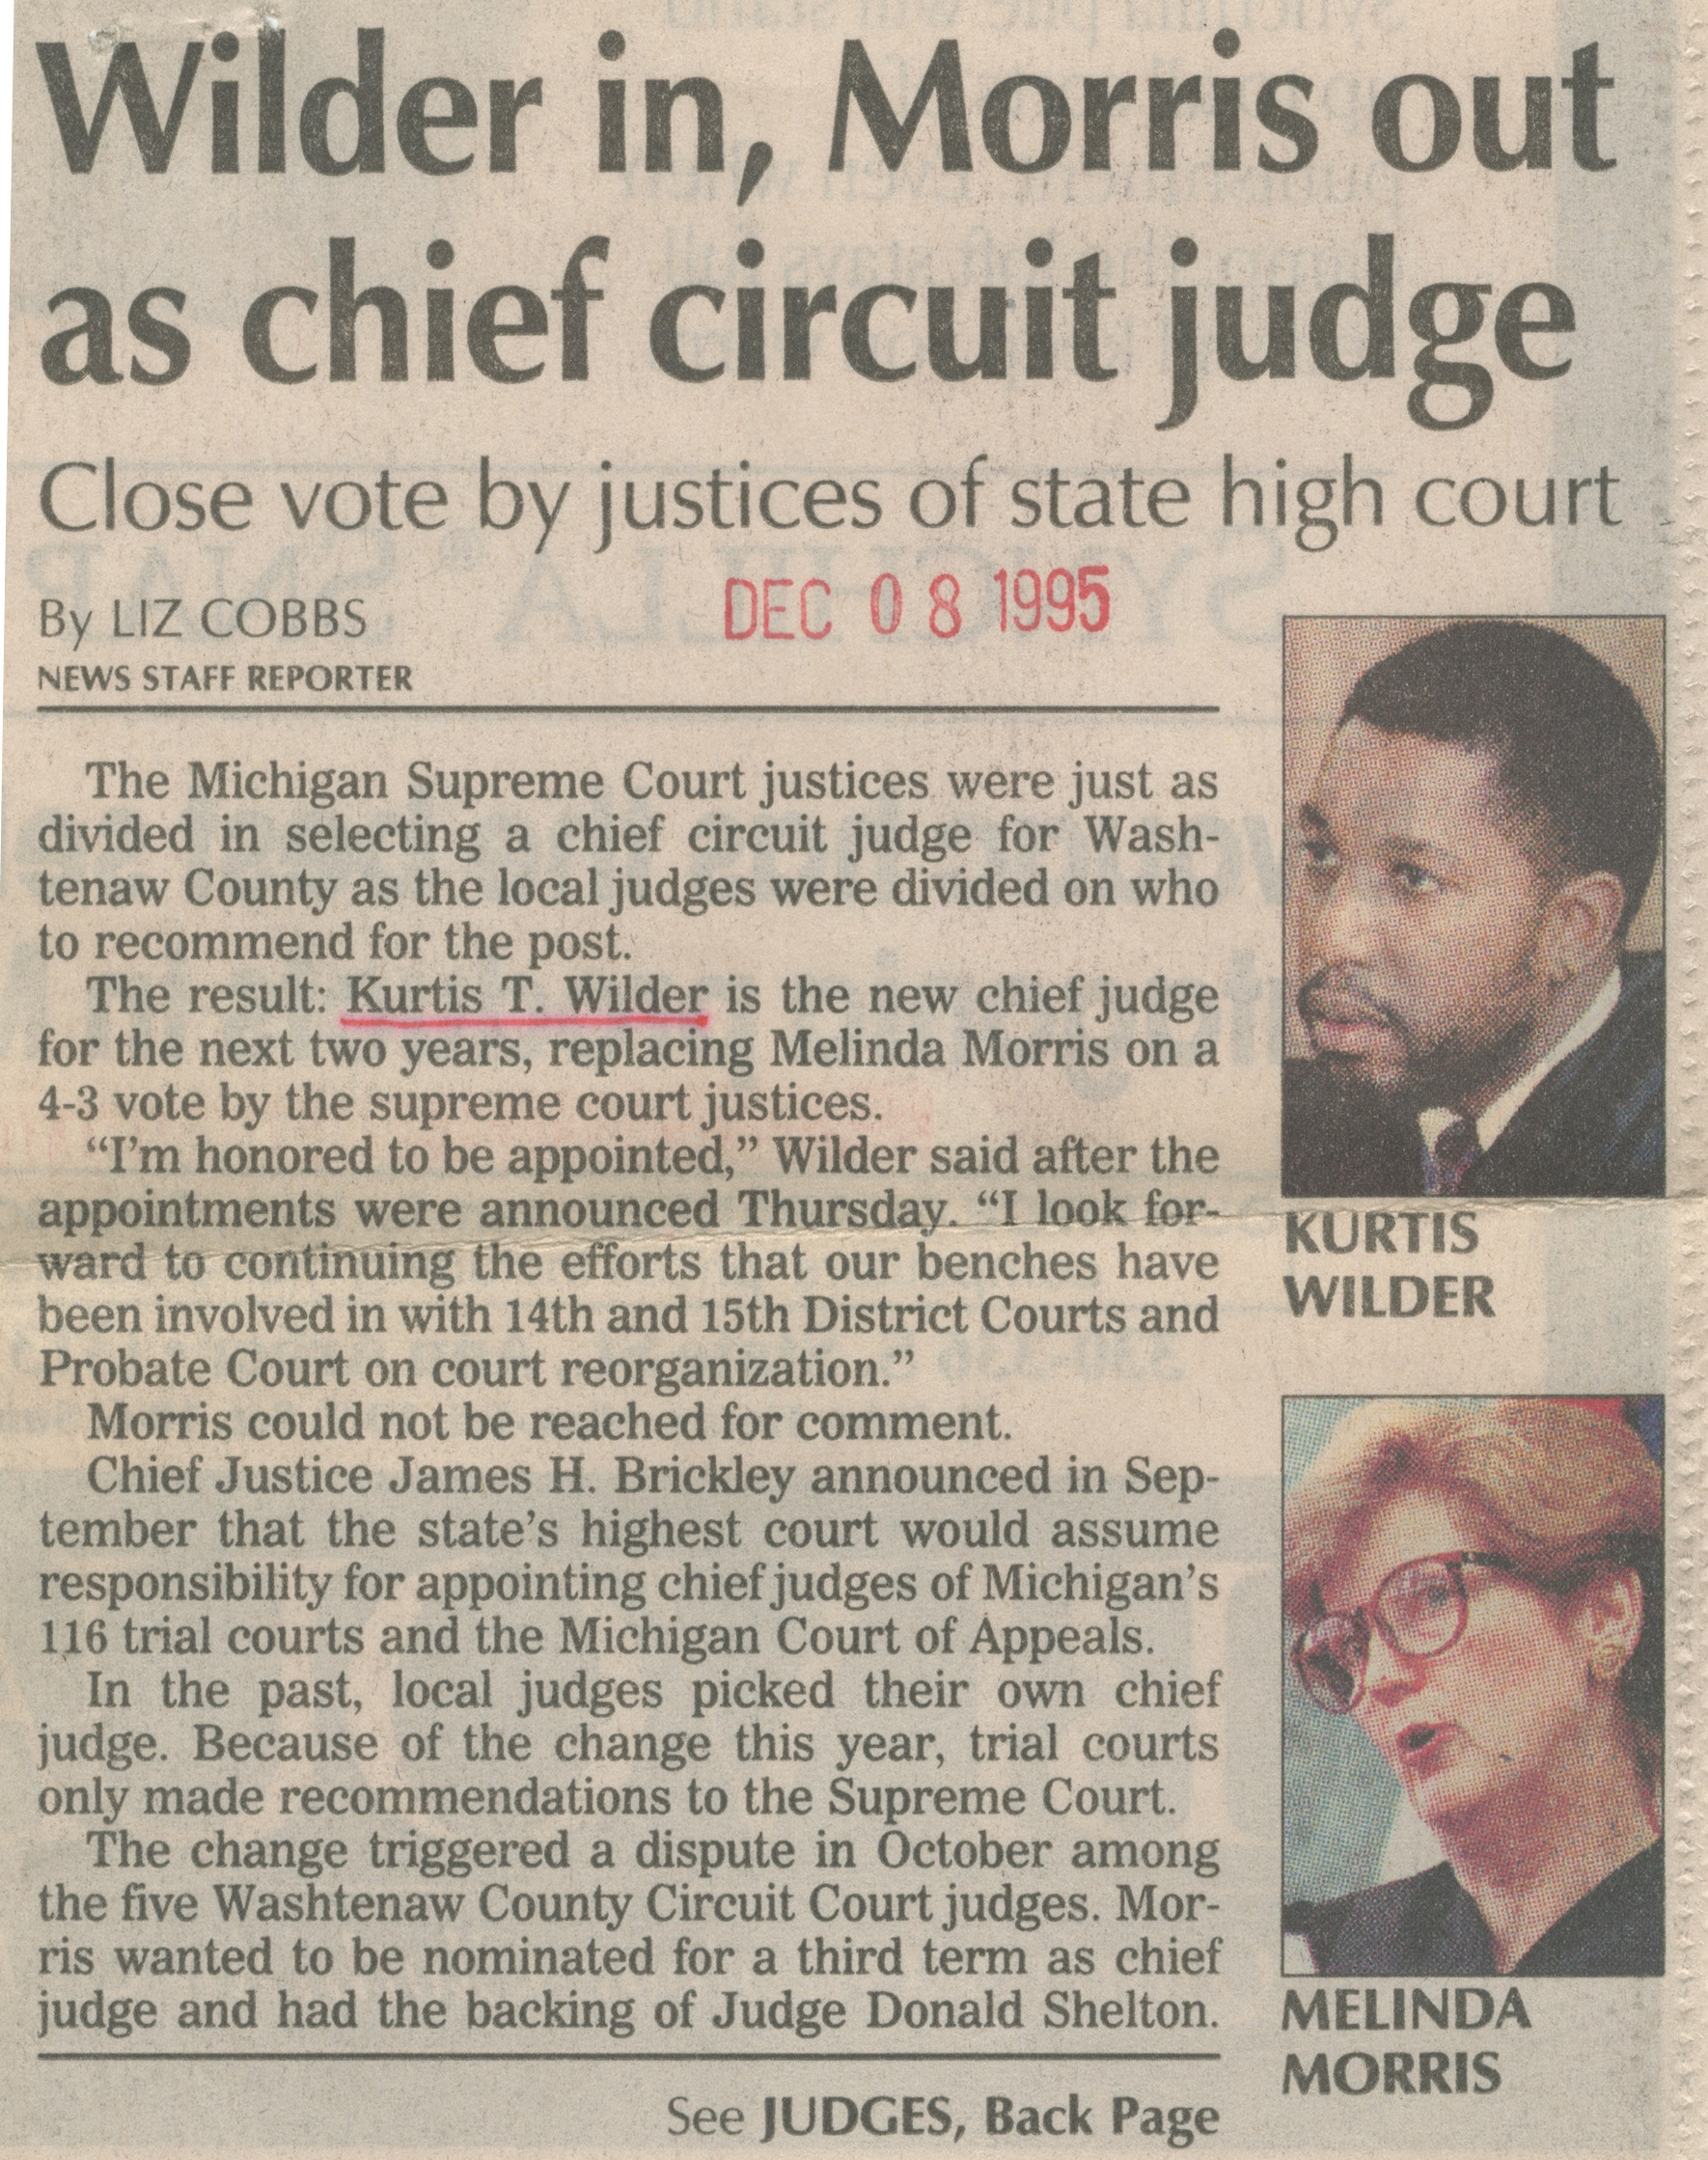 Wilder In, Morris Out As Chief Circuit Judge image